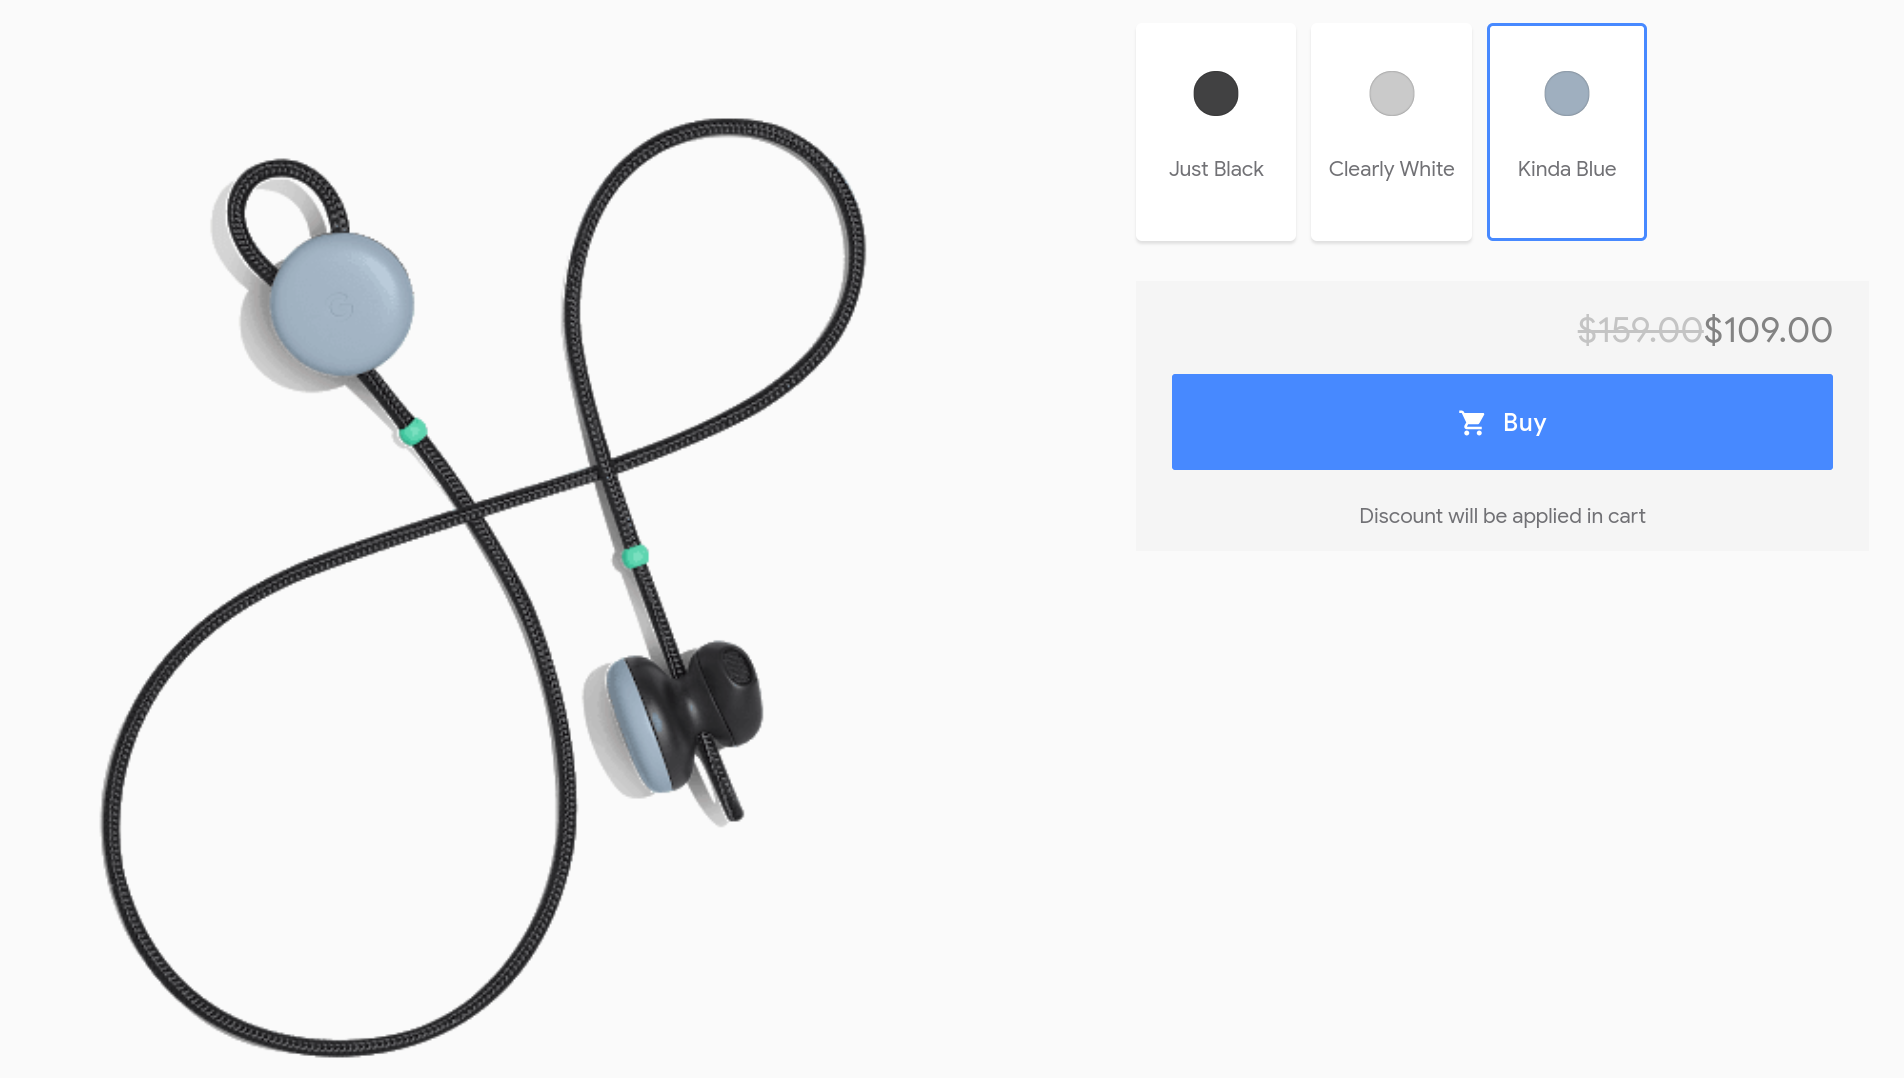 Deal Alert] Grab a pair of Pixel Buds for $109 ($50 off